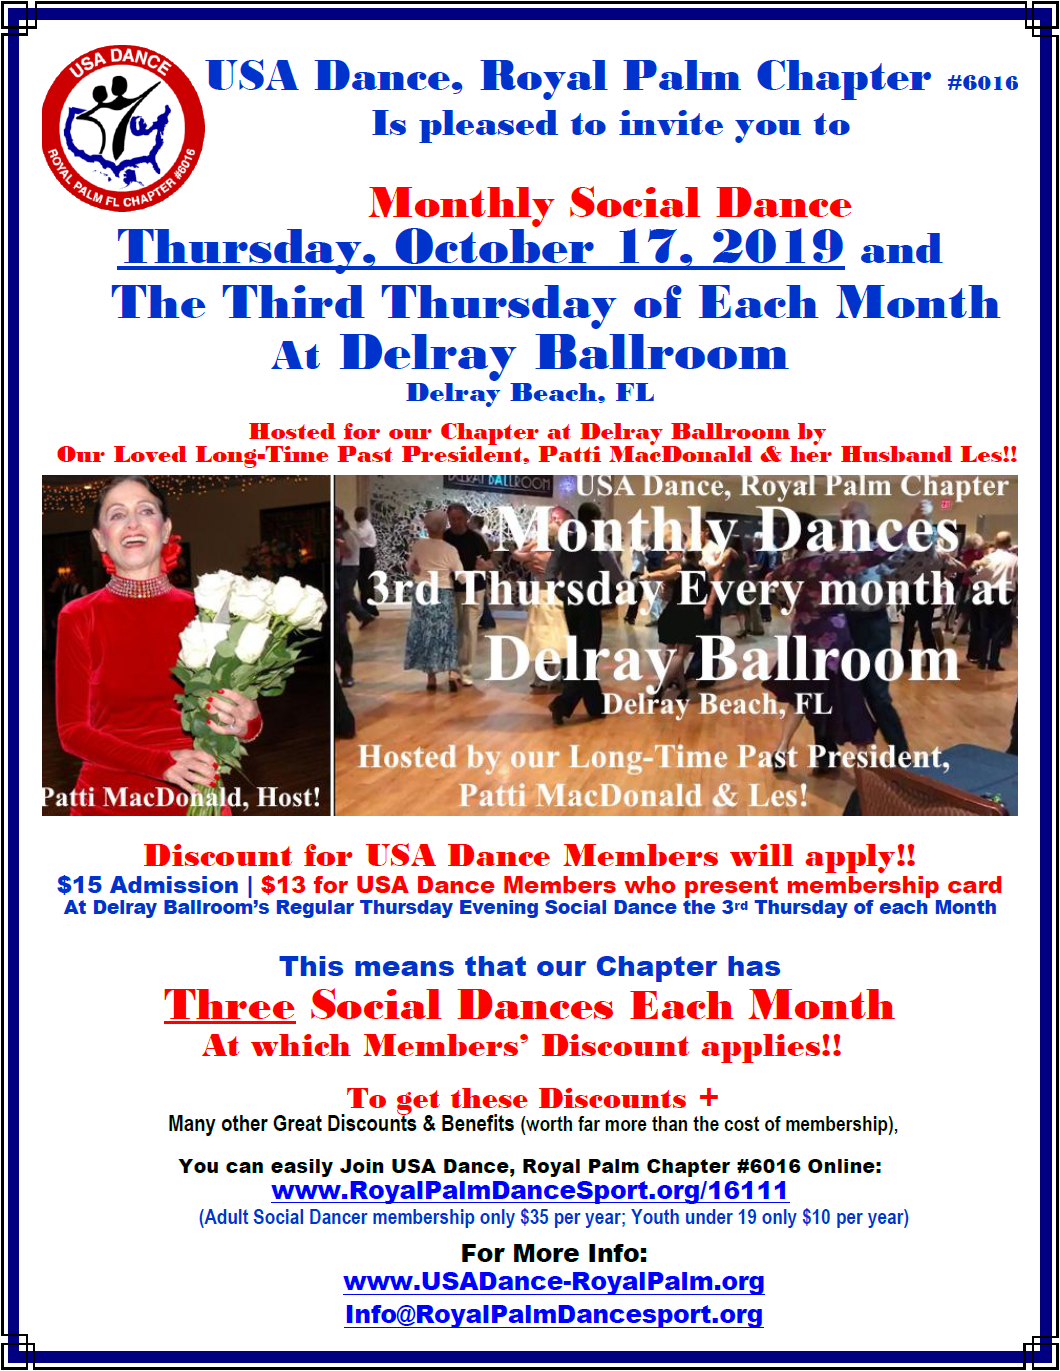 USA Dance, Royal Palm Chapter Monthly Dance: Thursday, October 17 & 3rd Thursday Every Month at Delray Ballroom